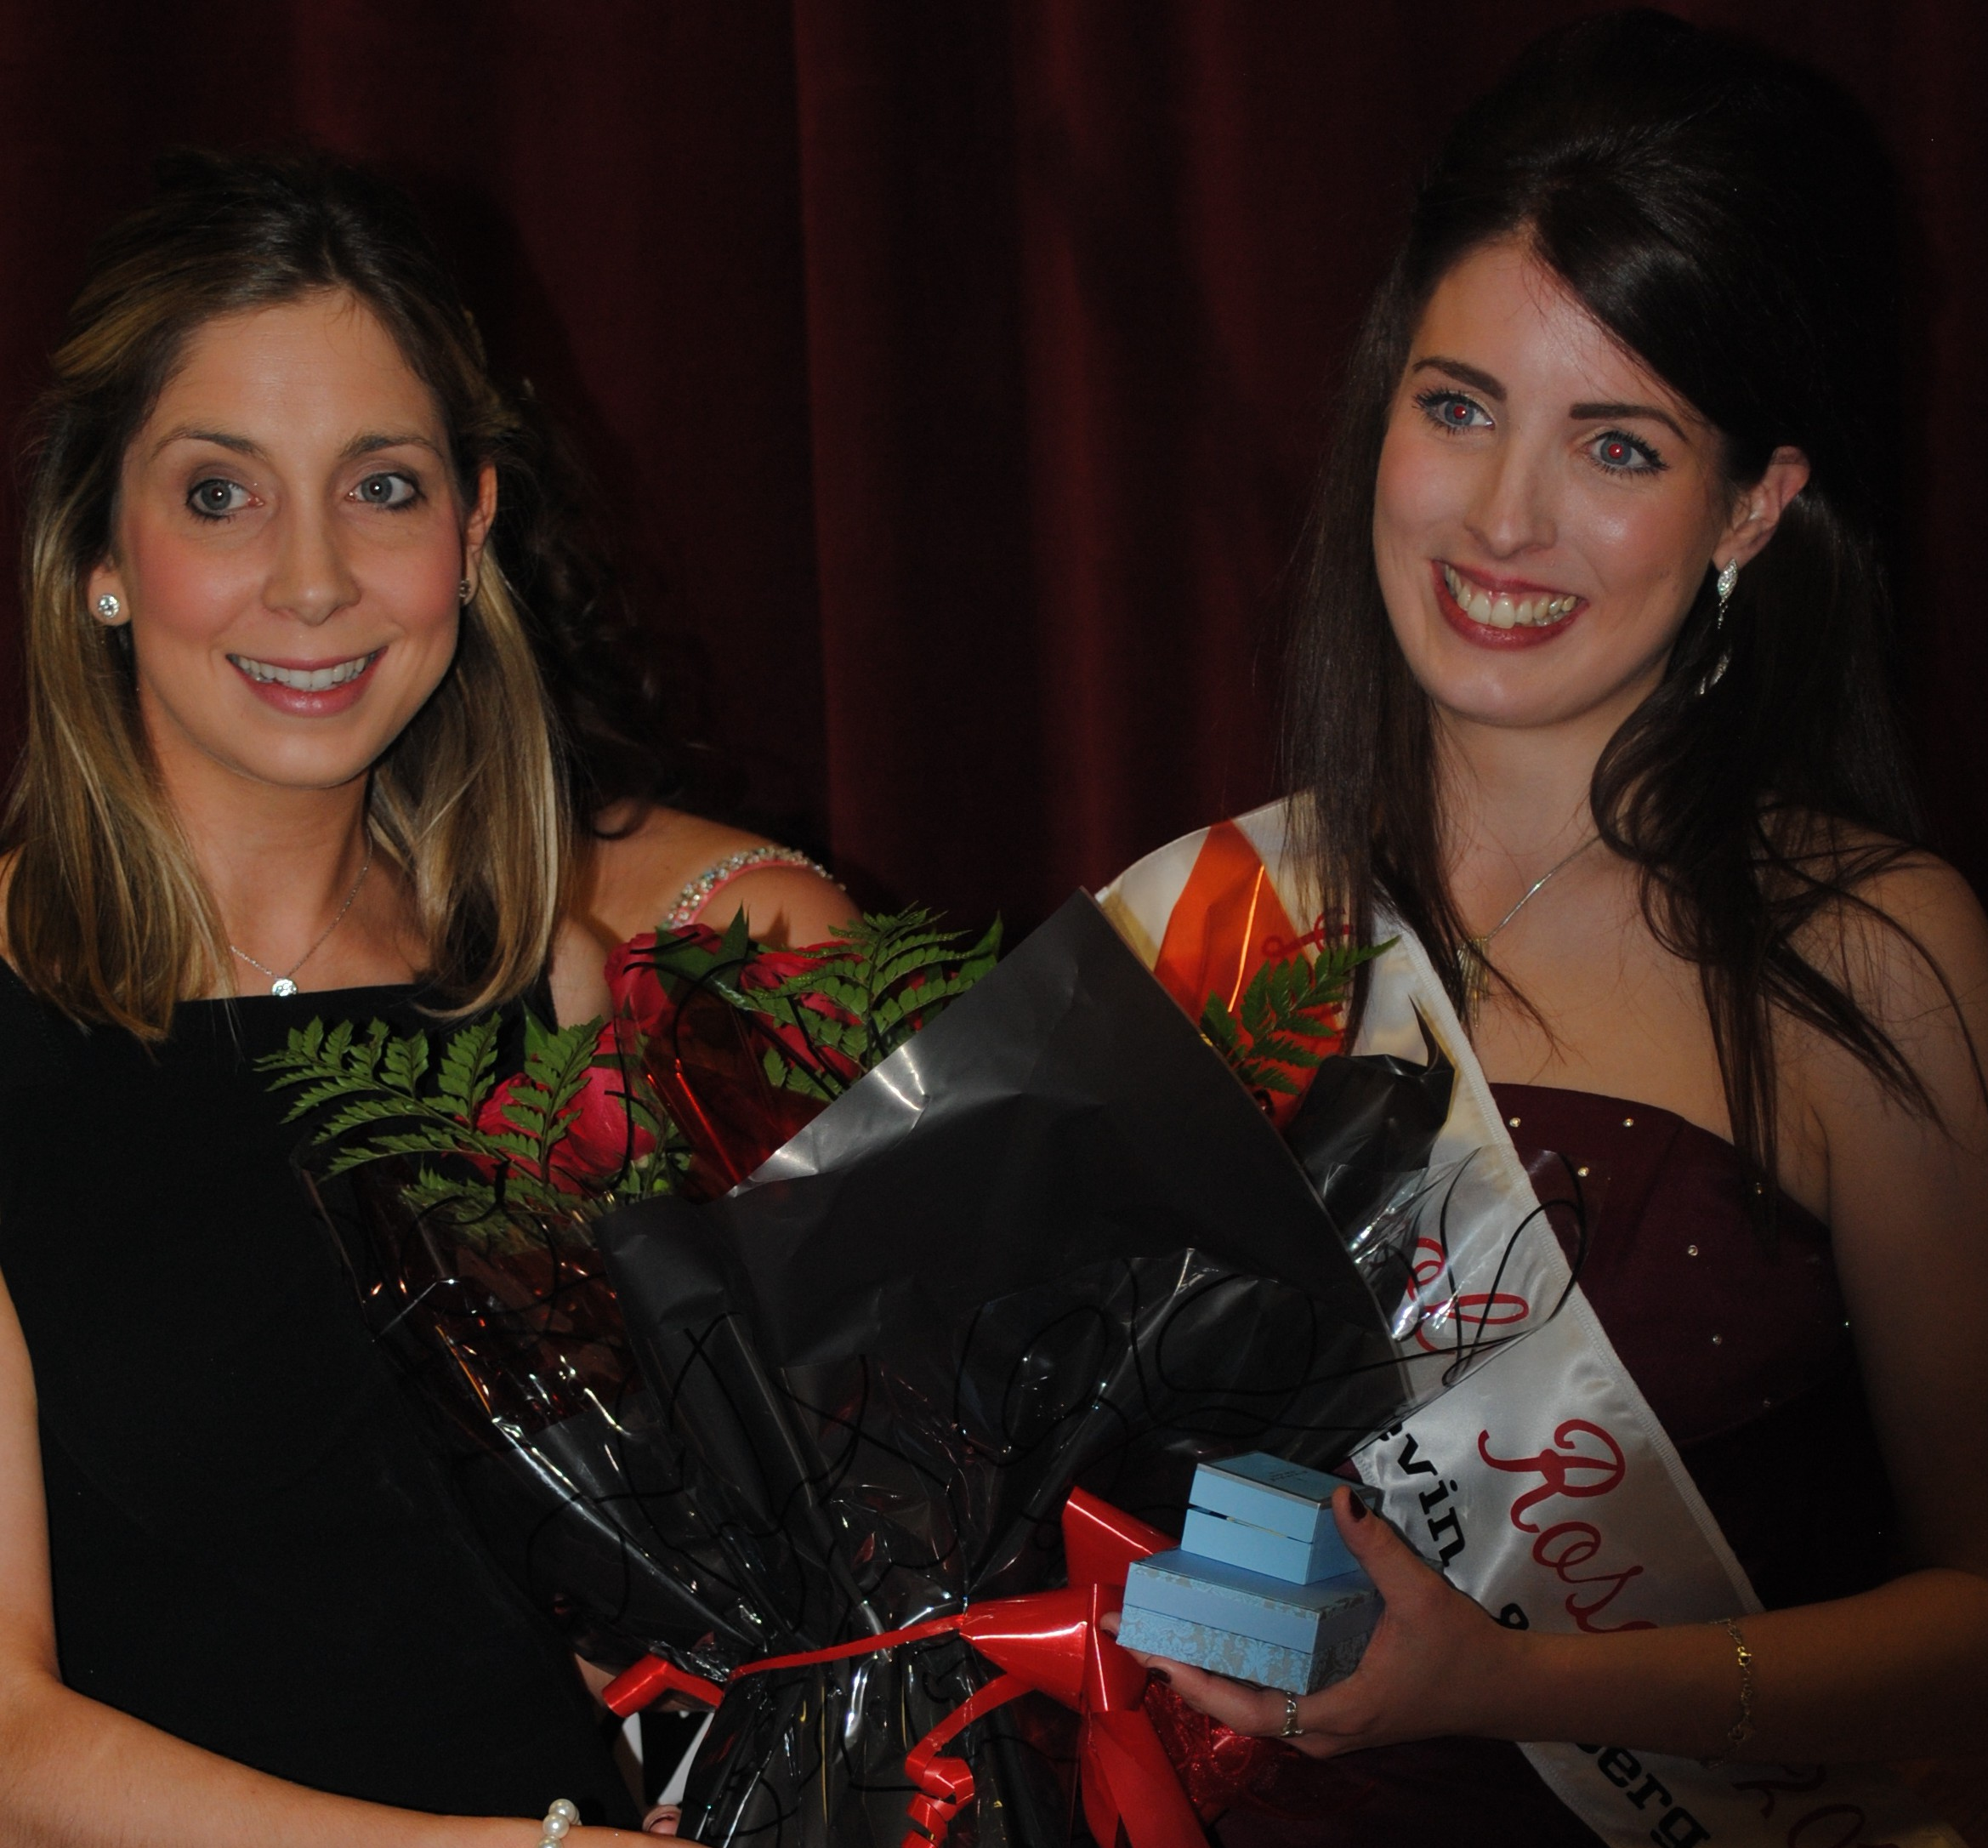 Liverpool Rose crowned